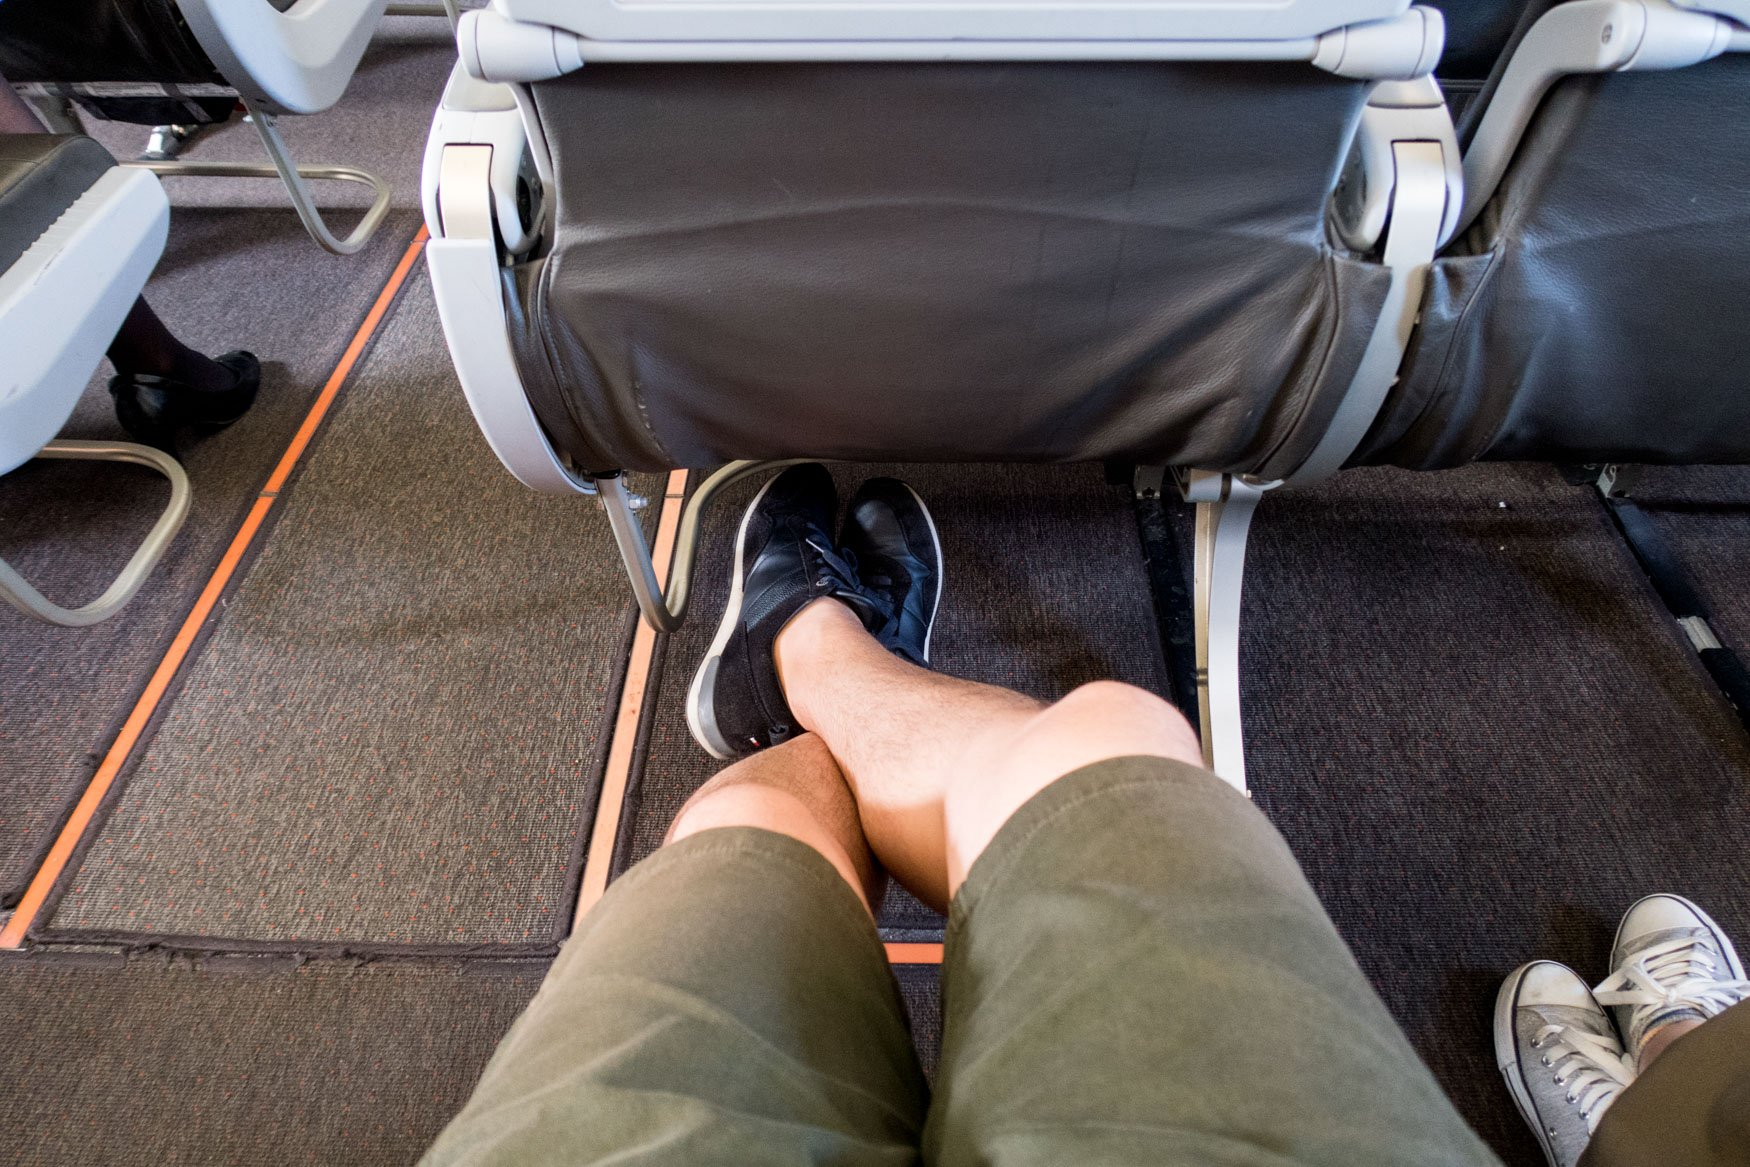 Jetstar Exit Row Legroom